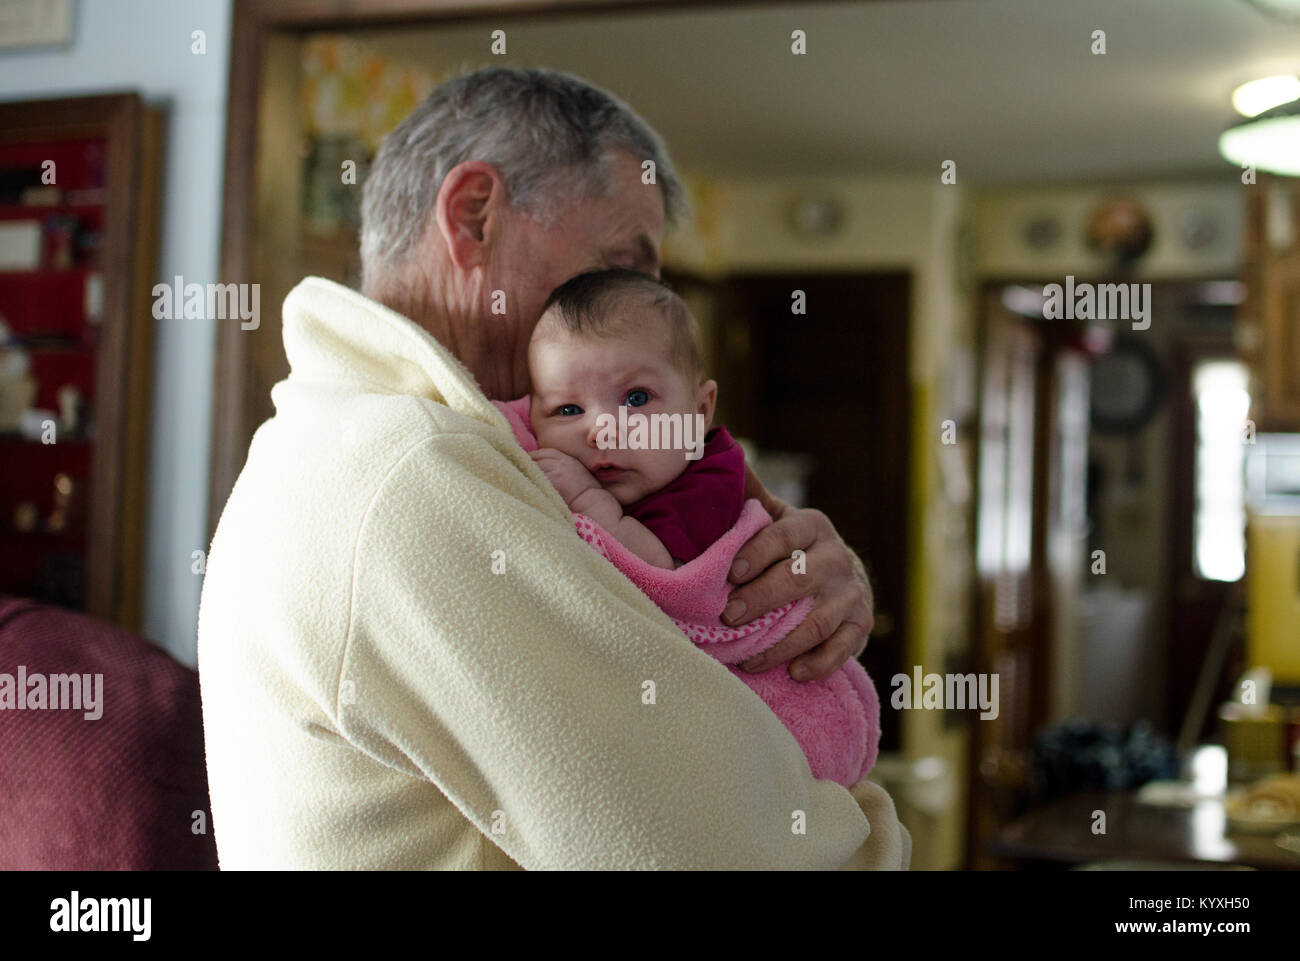 A grandfather holds his two month old granddaughter in a pink blanket. - Stock Image